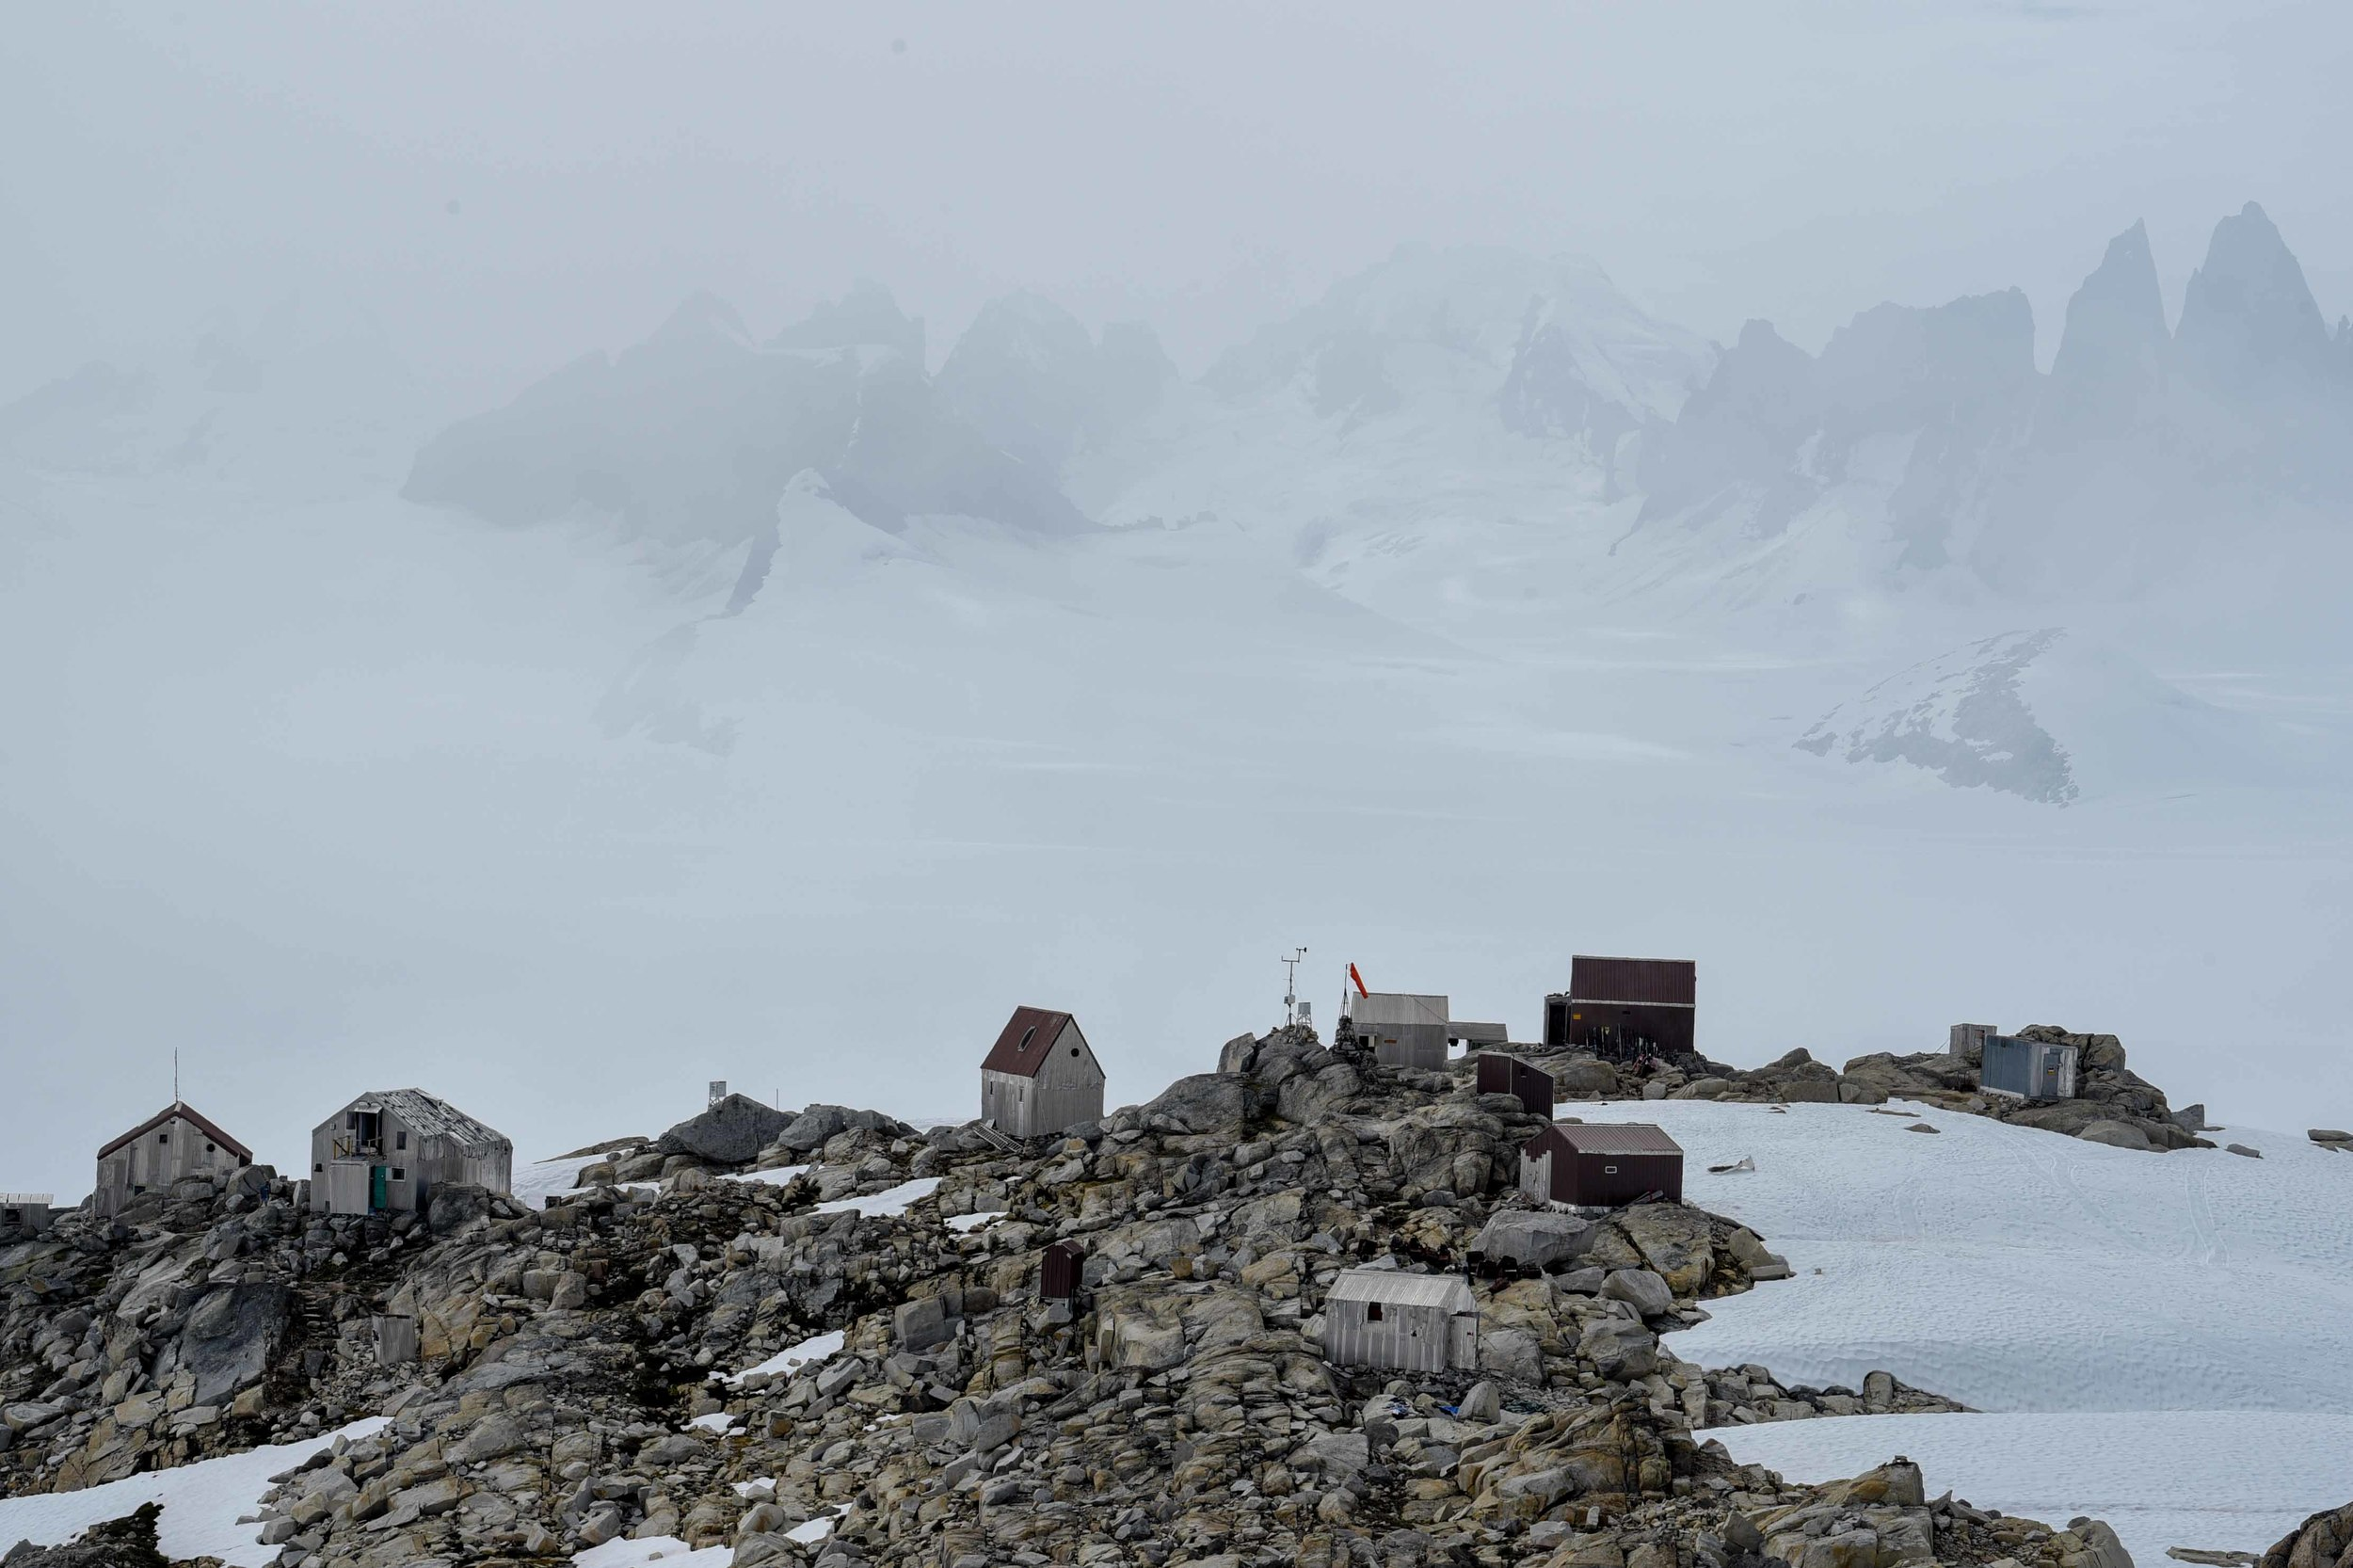 Camp 10 with the Taku Range in the mist beyond. Photo courtesy of PBJ Photography.